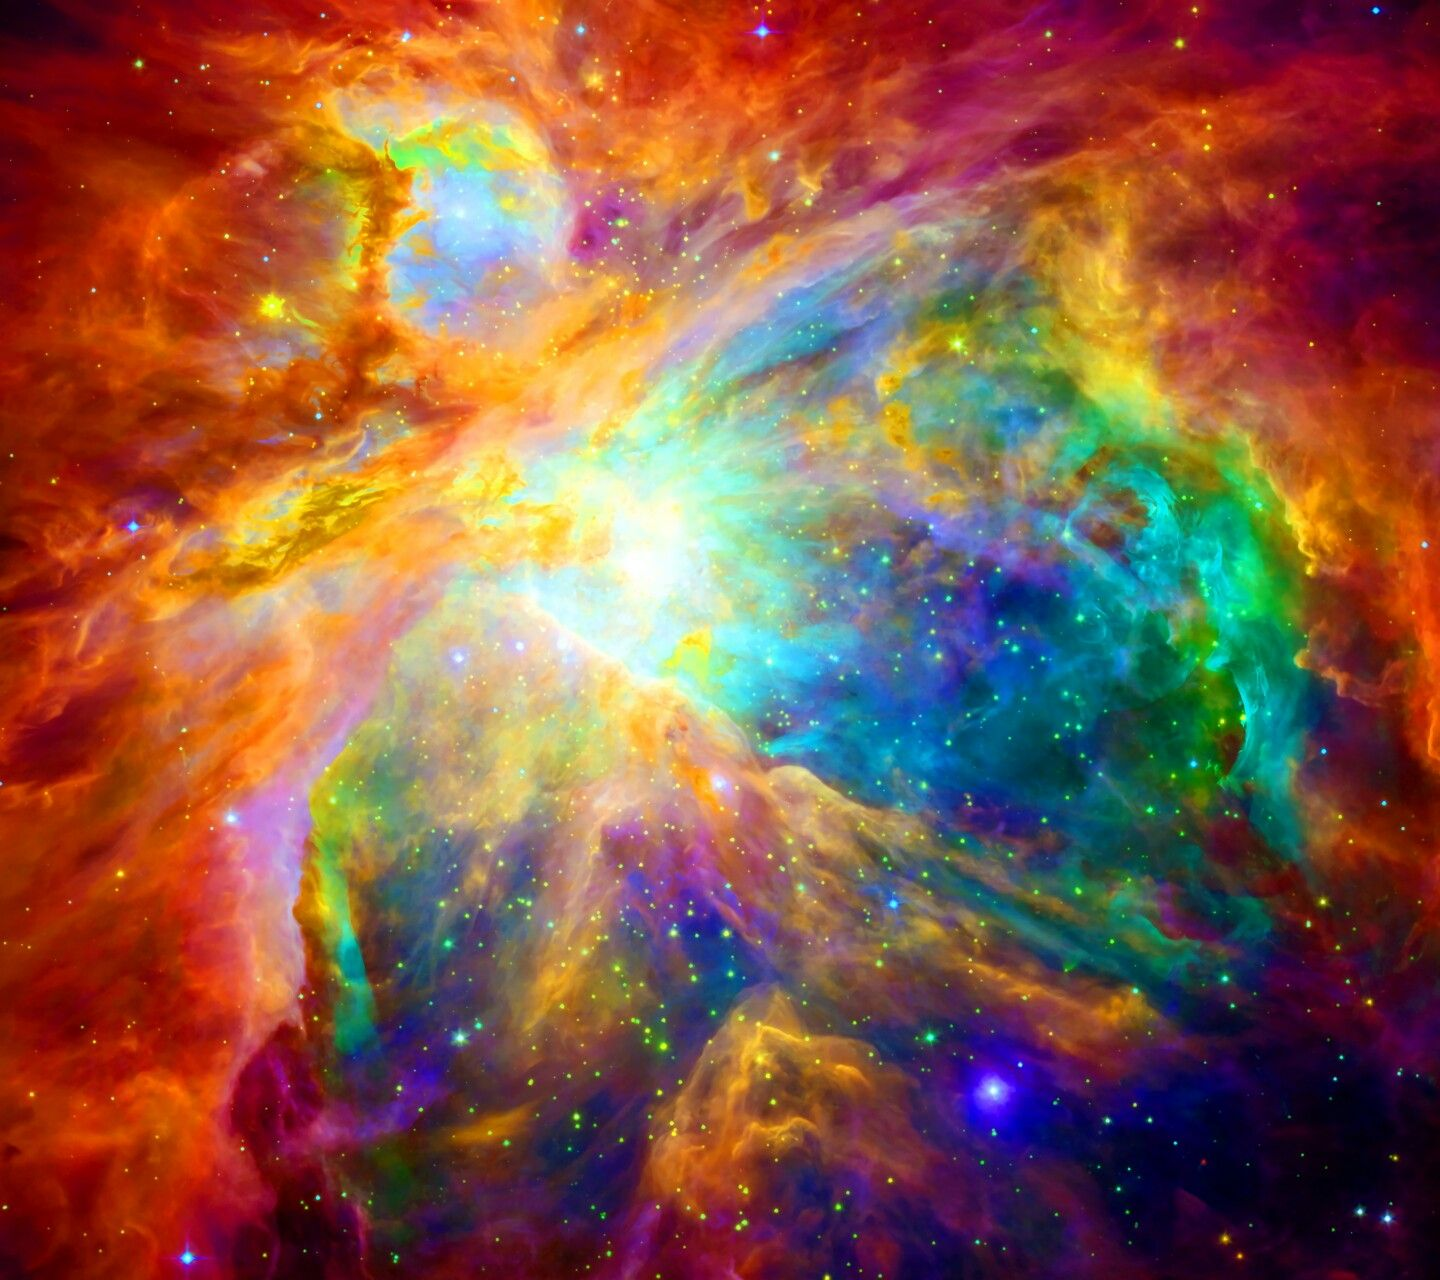 Pin by Michelle Ryley on NASA Orion nebula, Hubble space